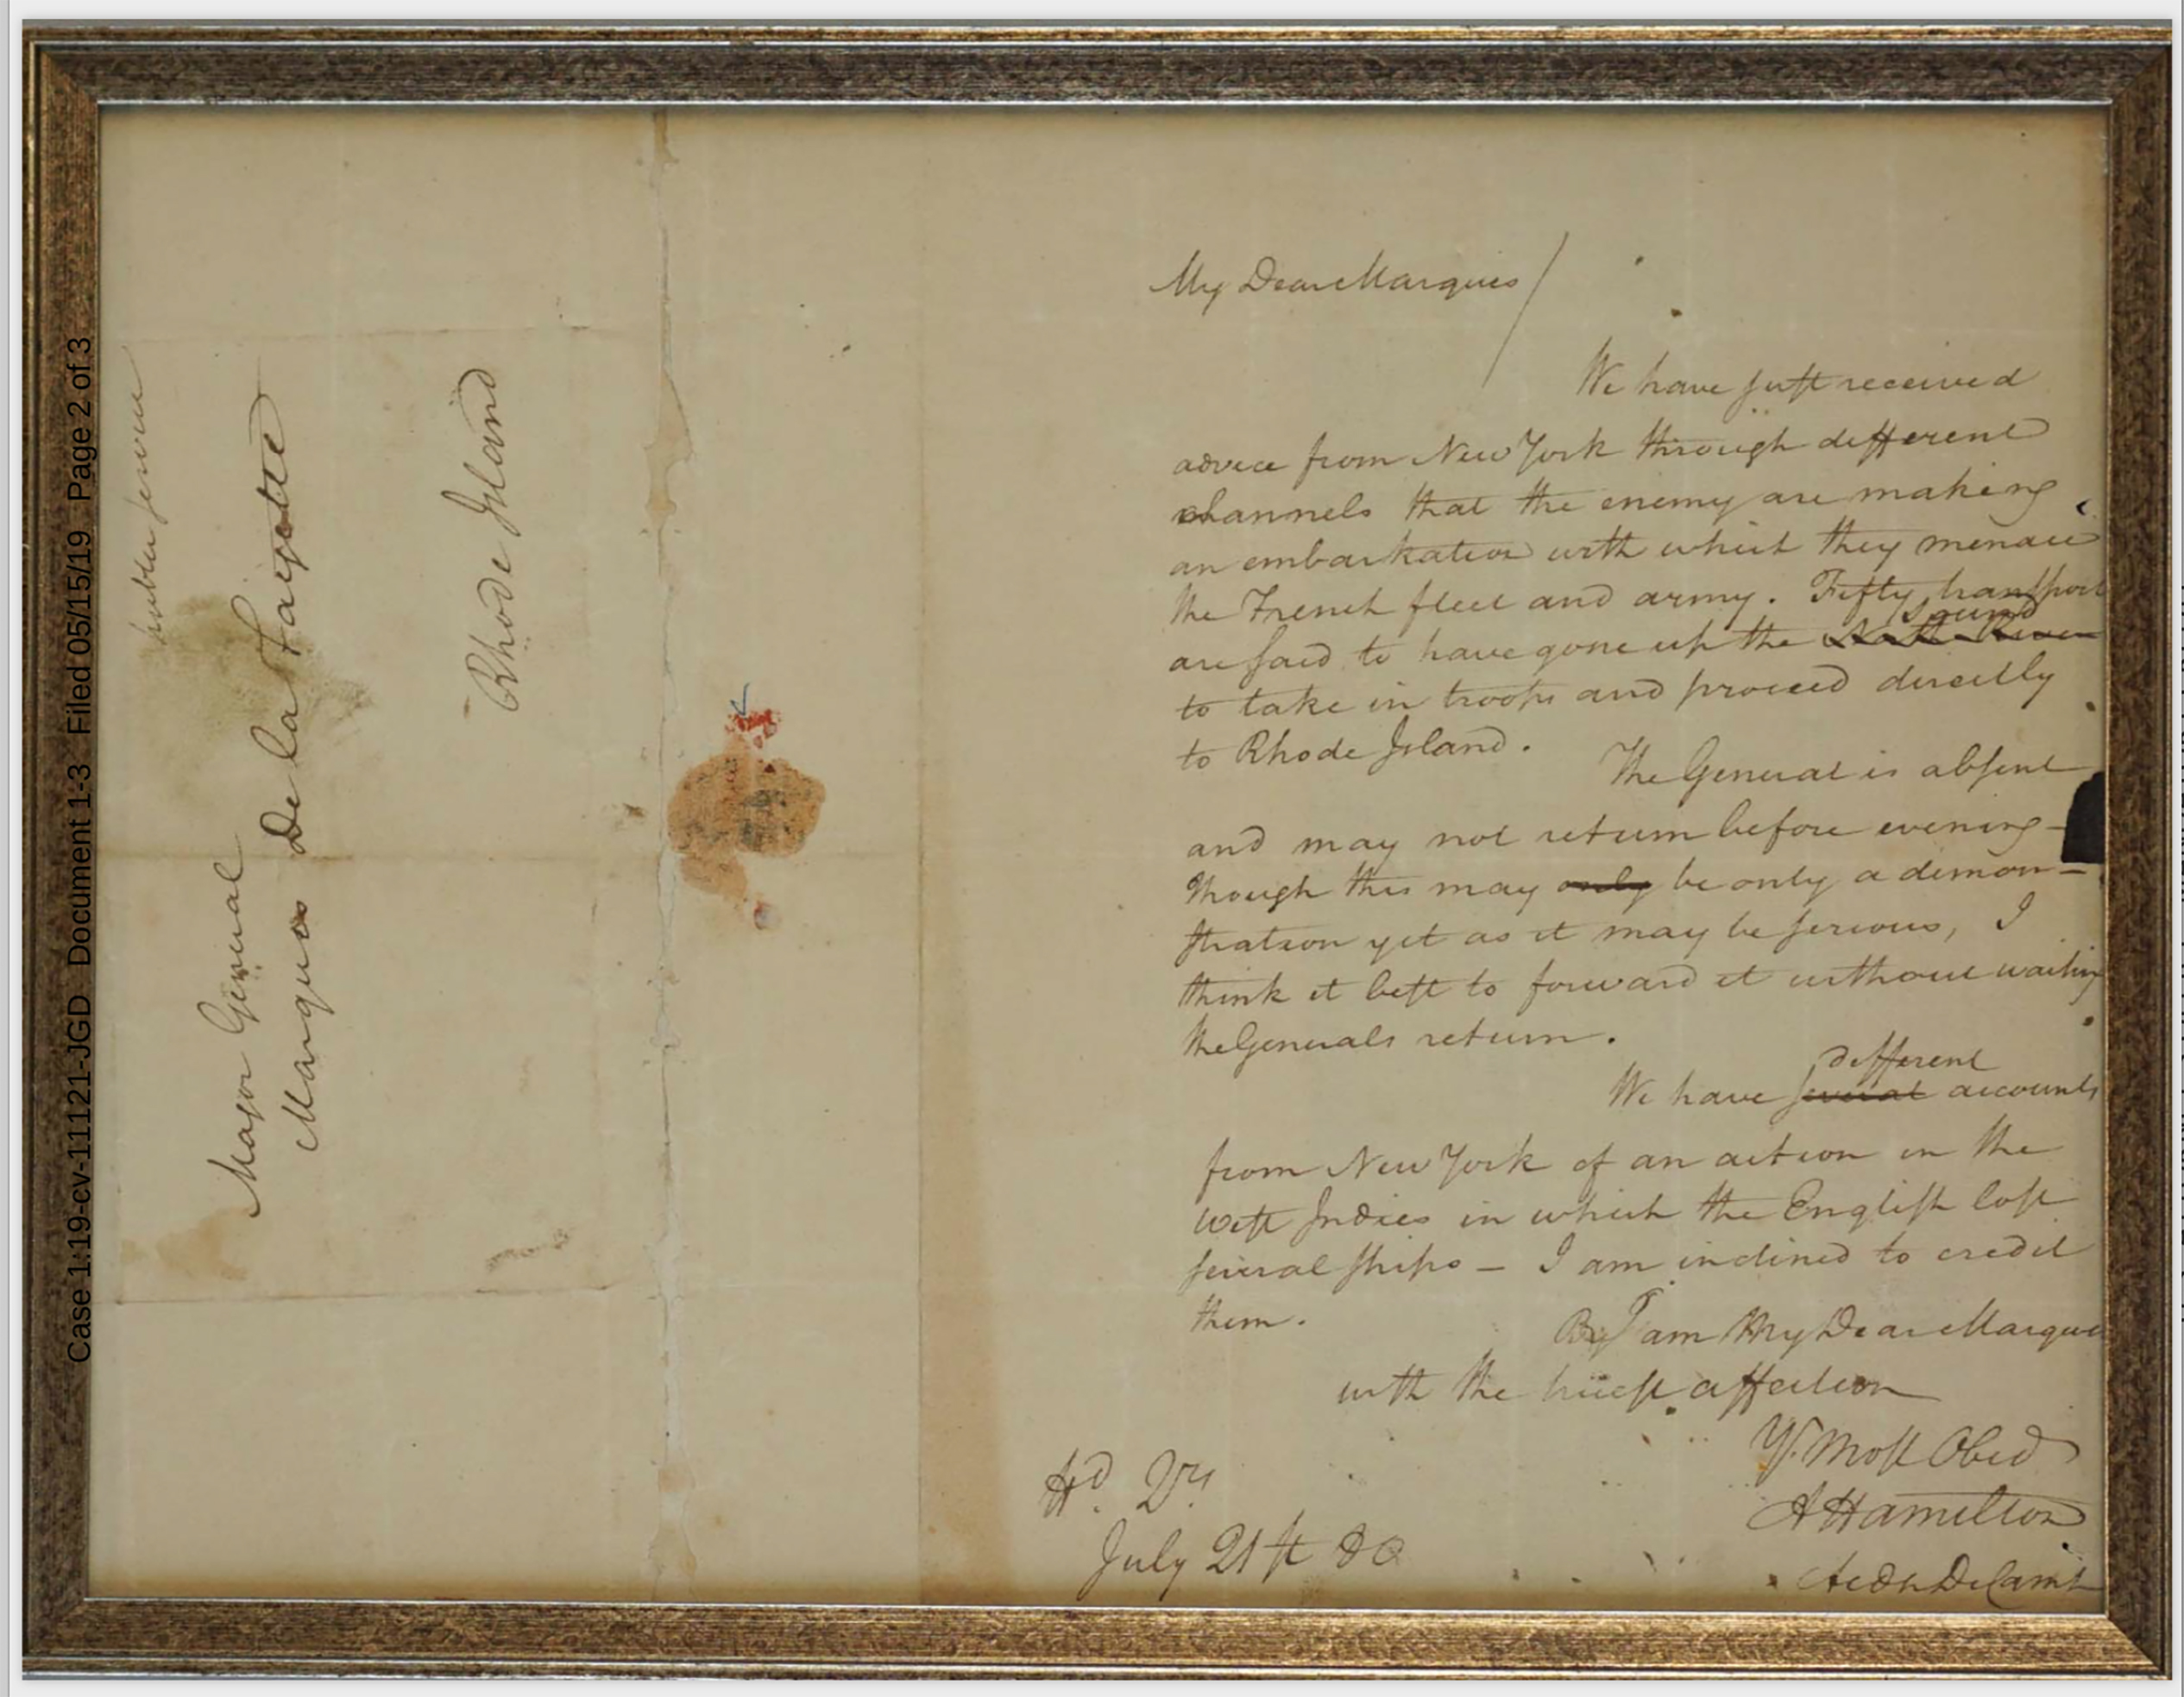 In an undated image provided by law enforcement, a letter written by Alexander Hamilton to the Marquis de Lafayette in 1780, which had been missing for seven decades. The letter, stolen from the Massachusetts Archives, came to light in November 2018 when a Virginia auction house notified the FBI after a family tried to consign it for auction. (U.S. Attorney's Office, Massachusetts via The New York Times) -- FOR EDITORIAL USE ONLY --